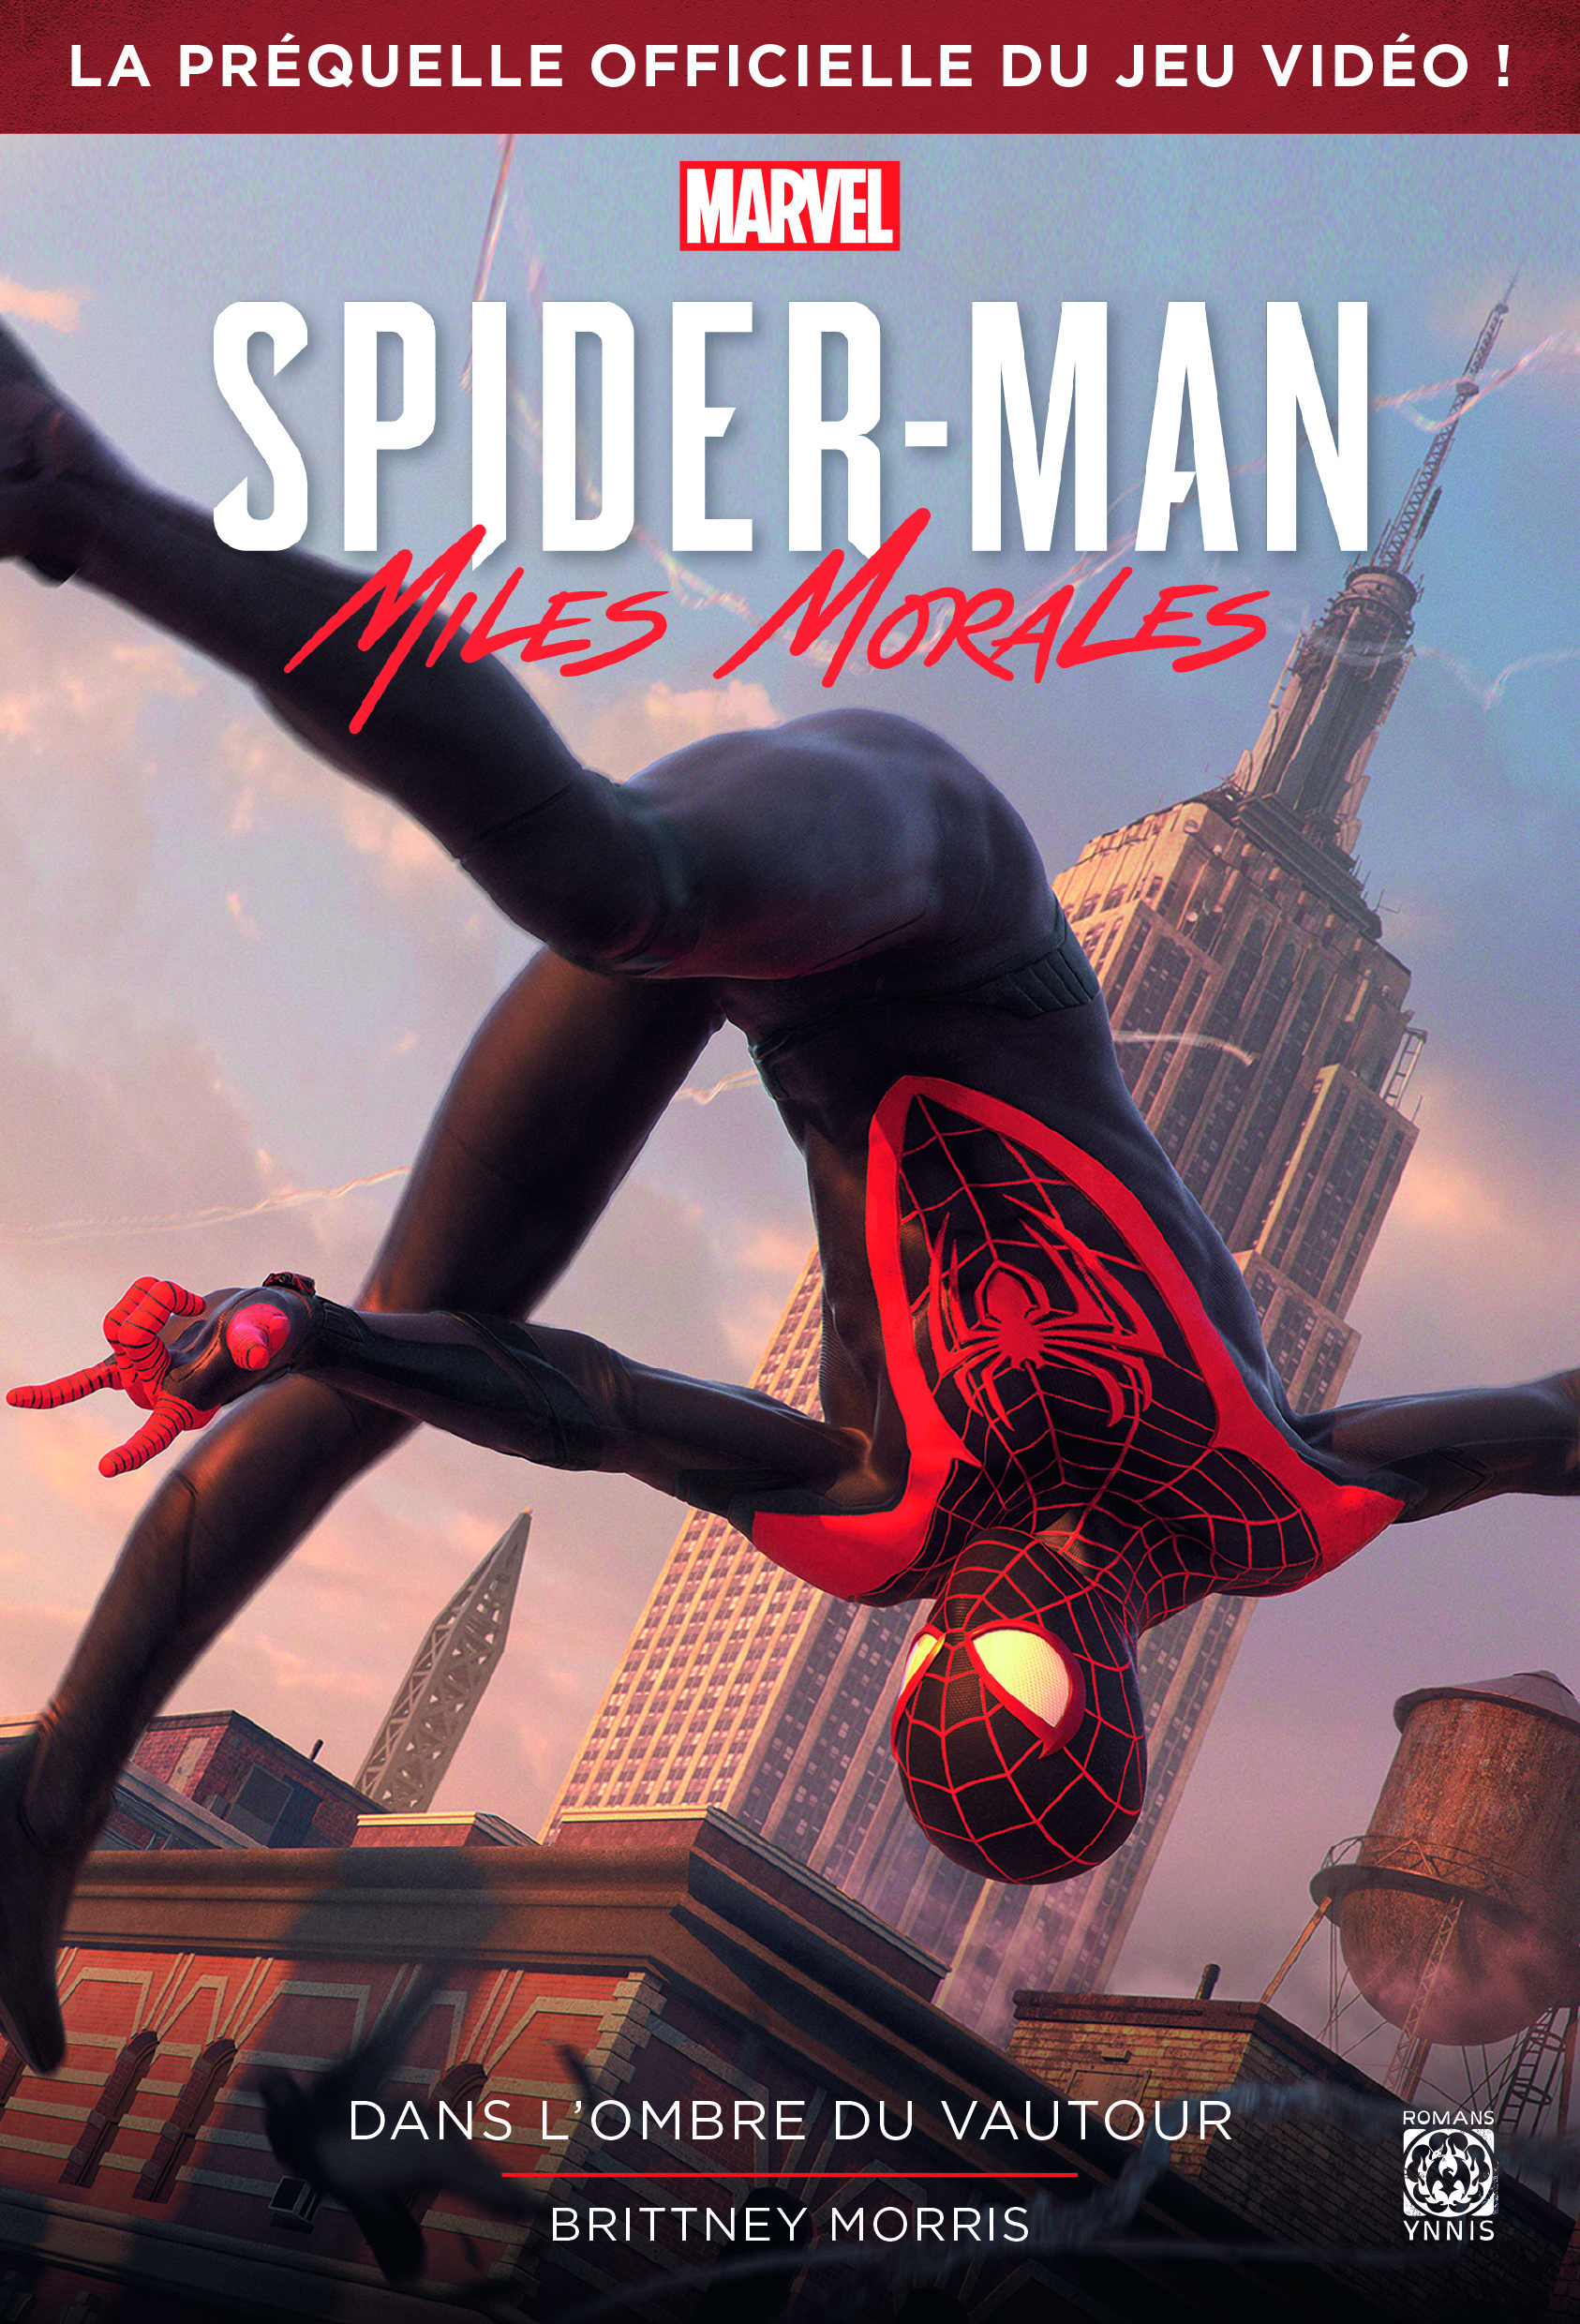 Spiderman_Miles_Morales_C1 (1)